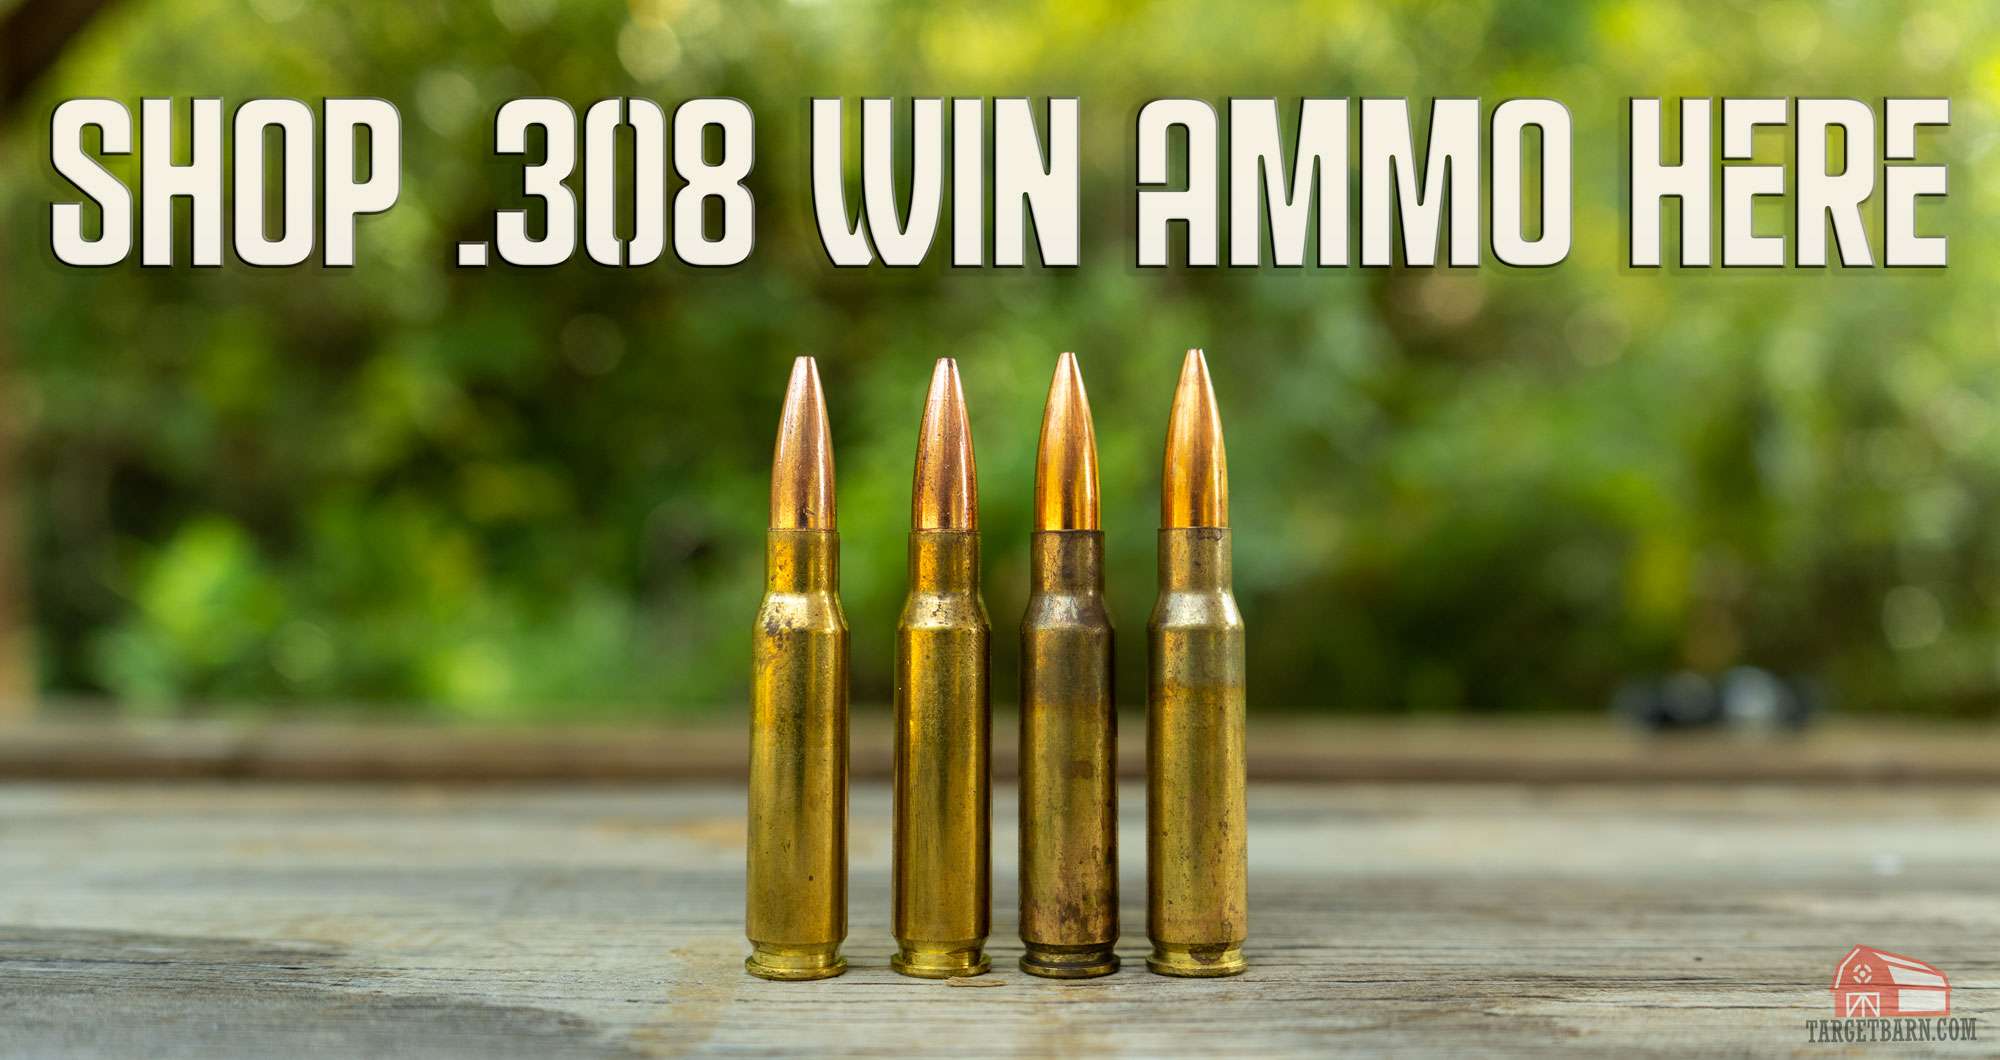 shop 308 win ammo here